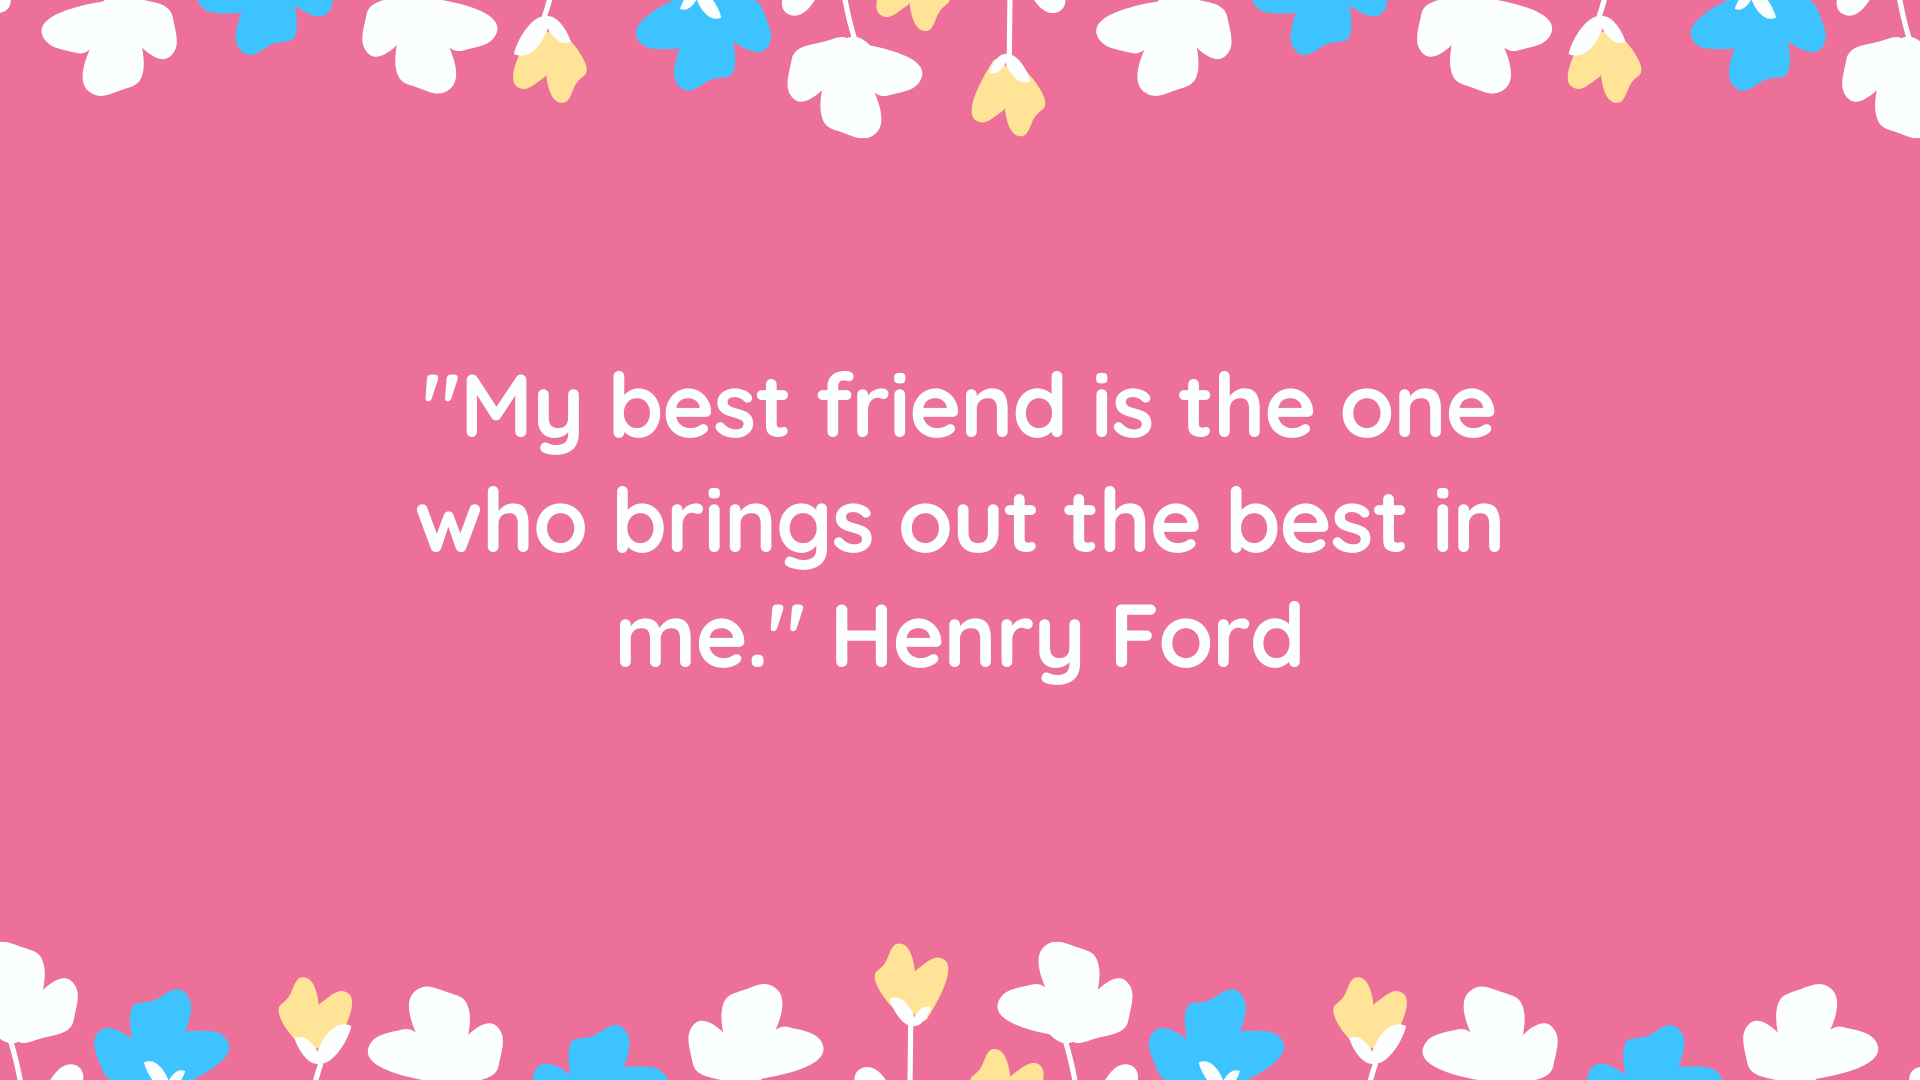 """My best friend is the one who brings out the best in me."" Henry Ford"